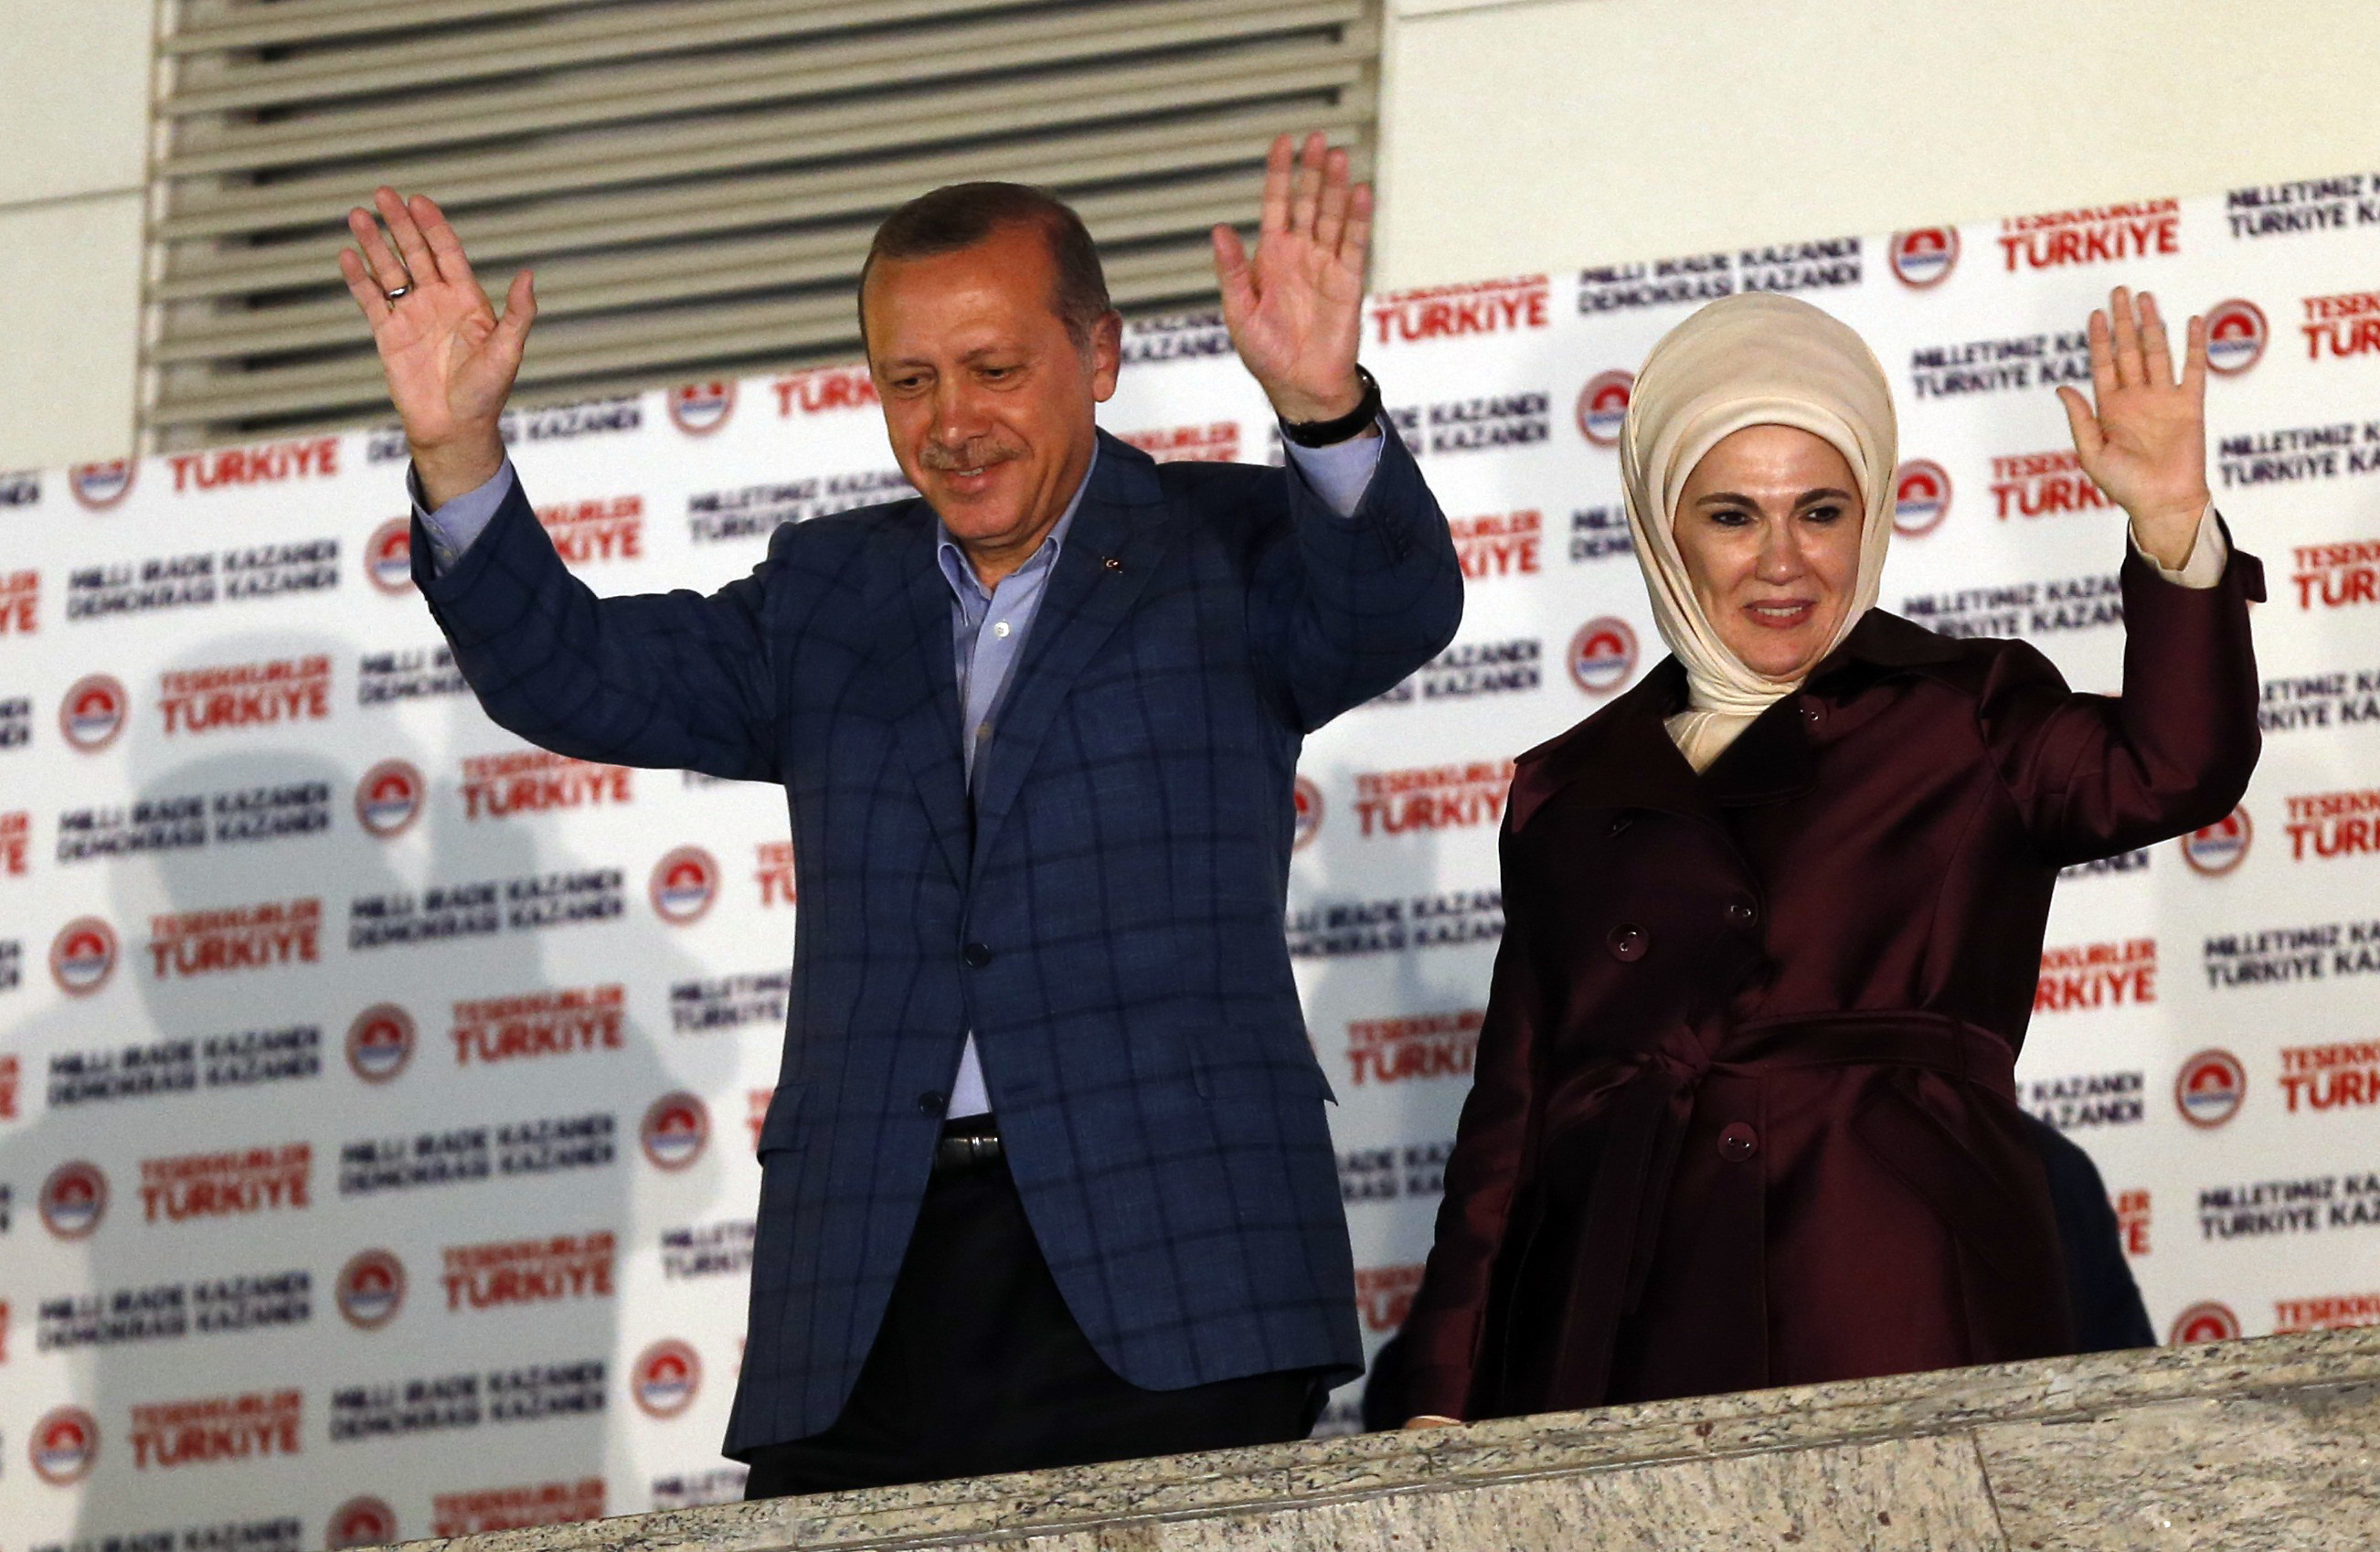 Recep Tayyip Erdogan, Turkey's Prime Minister, and his wife, Ermine, wave hands to supporters as they celebrate his election victory in front of the Justice and Development party headquarters in Ankara on August 10, 2014.